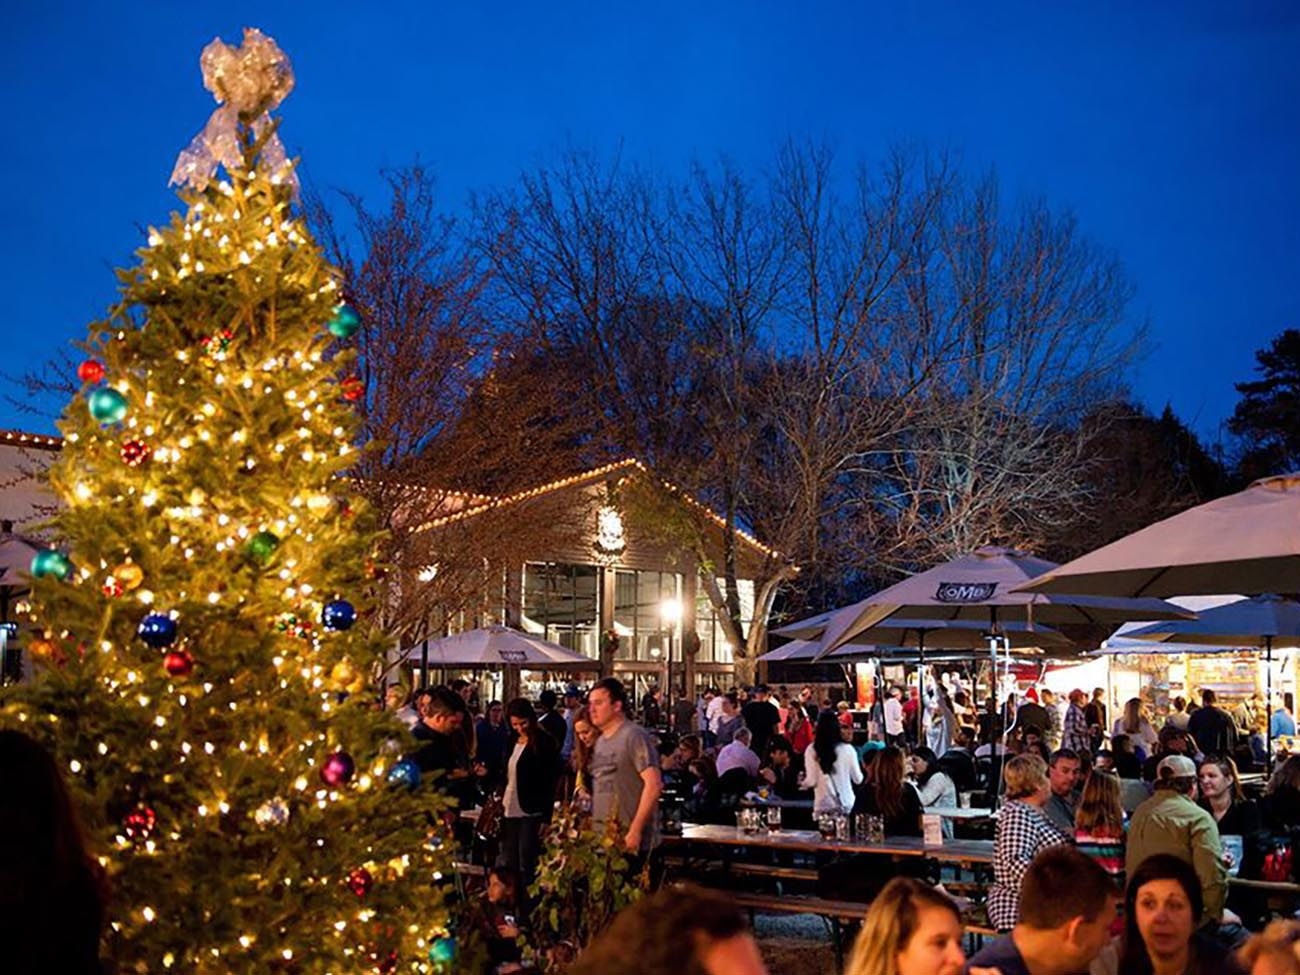 Omb Christmas Market 2020 OMB'S Annual Weihnachtsmarkt Christmas Market opens on Friday, and